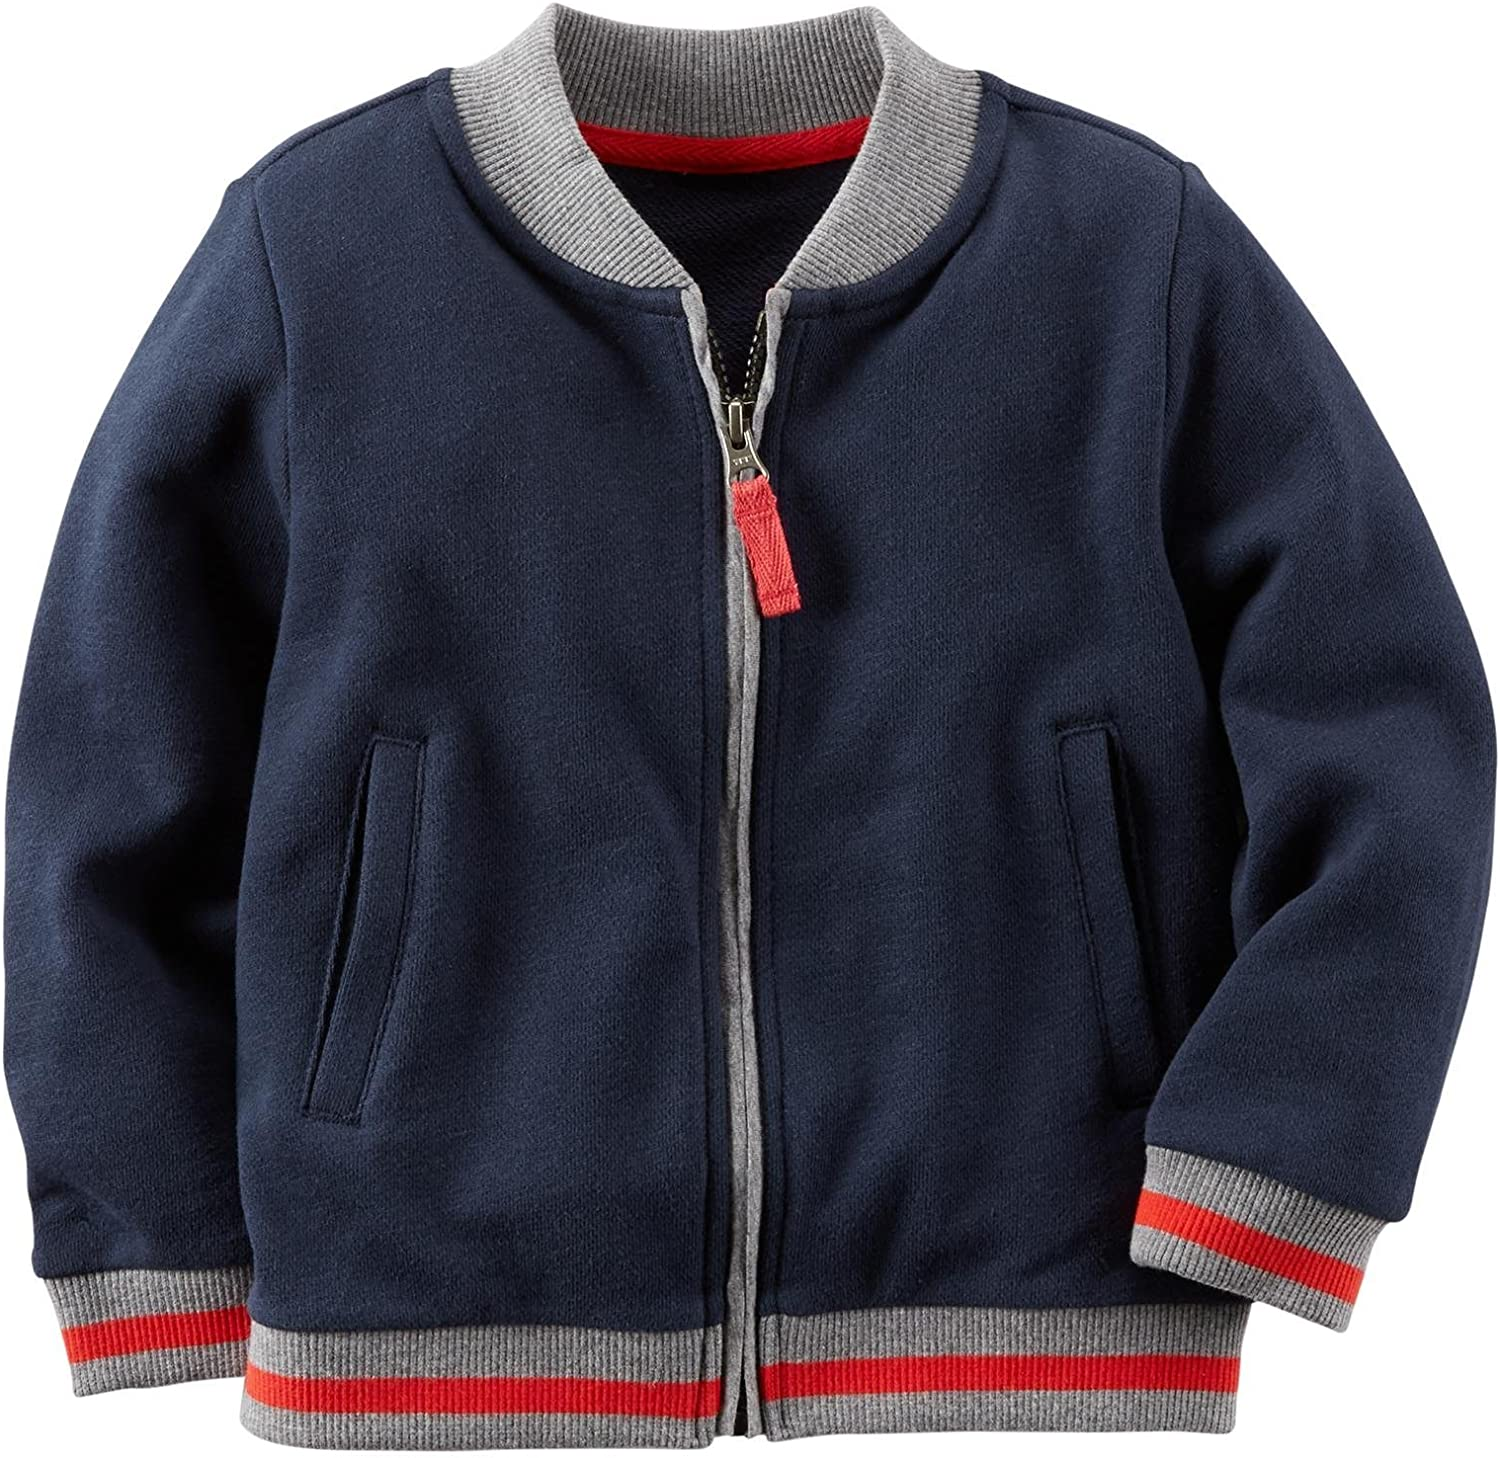 Toddler//Kid 4 Carters Little Boys Crew Jacket - Navy